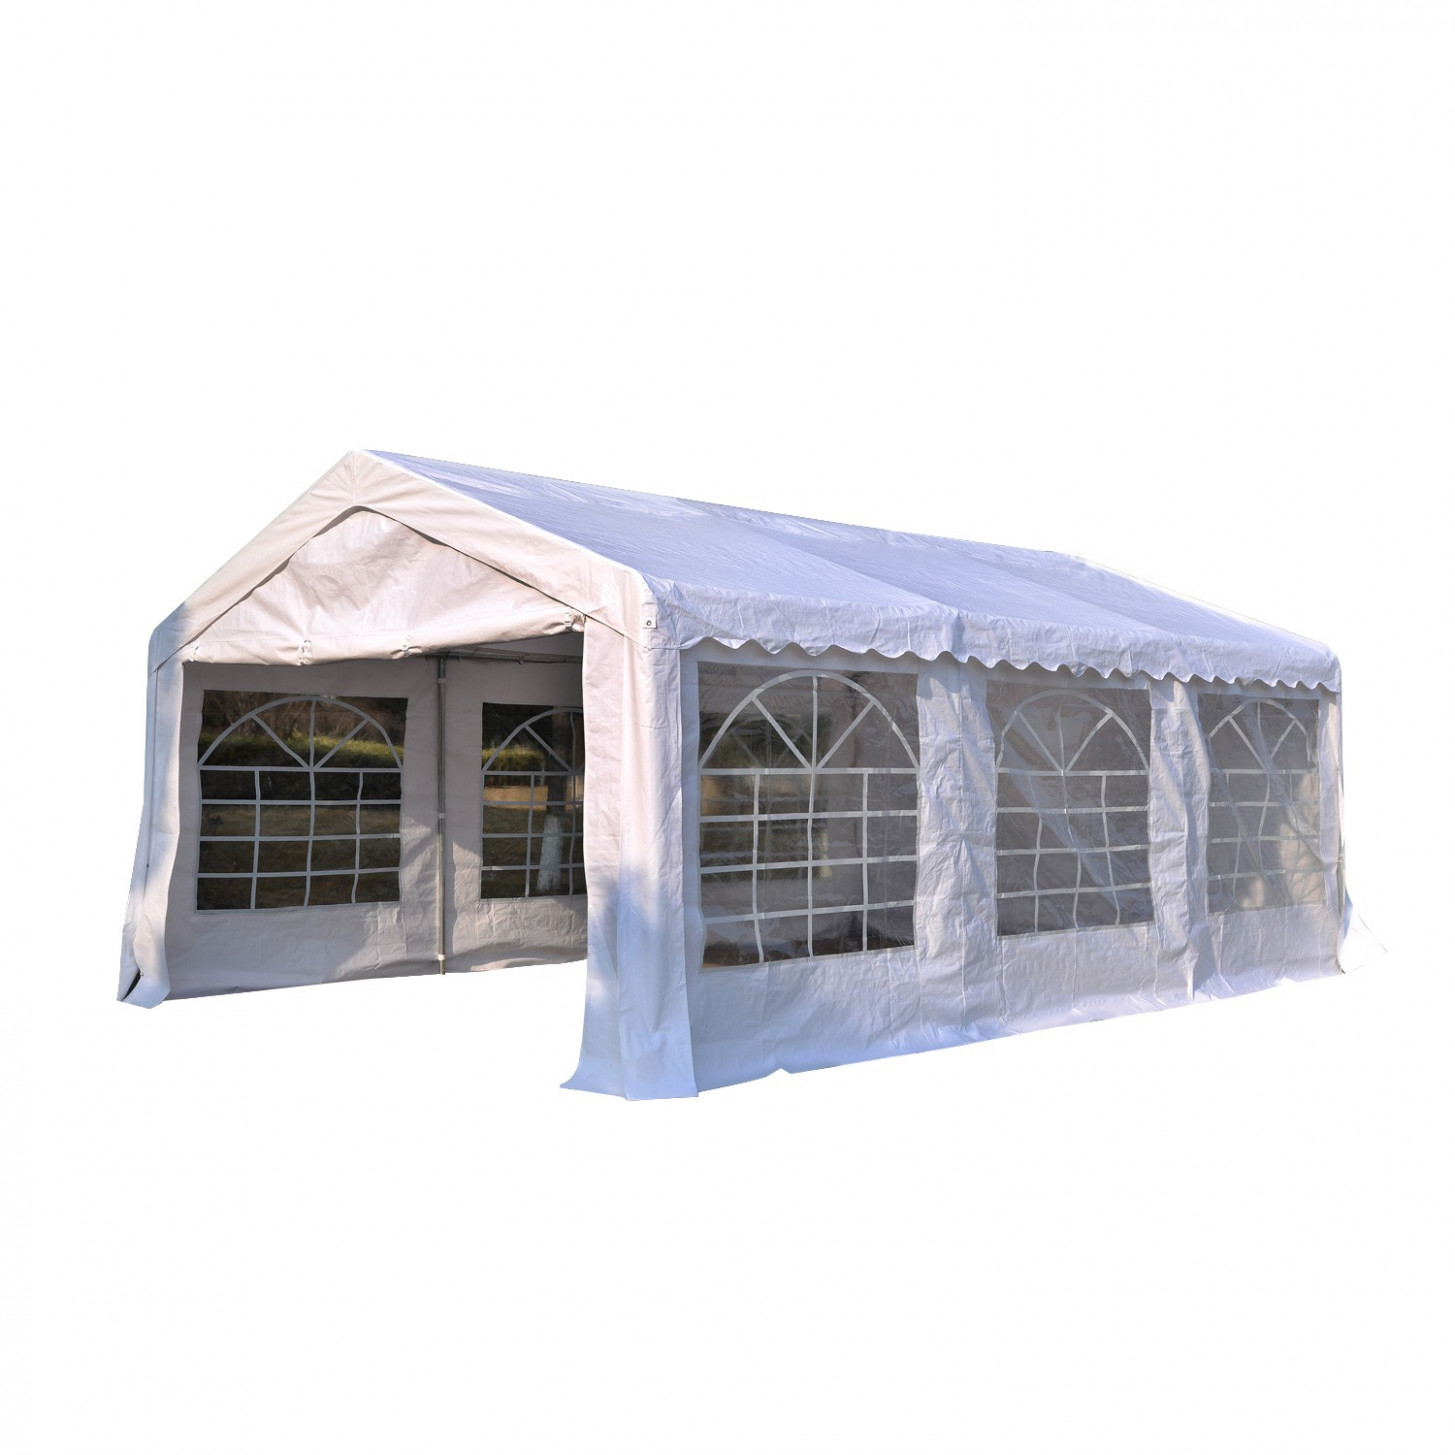 Outsunny 13'x26' Heavy-duty Outdoor Carport Wedding Party ...